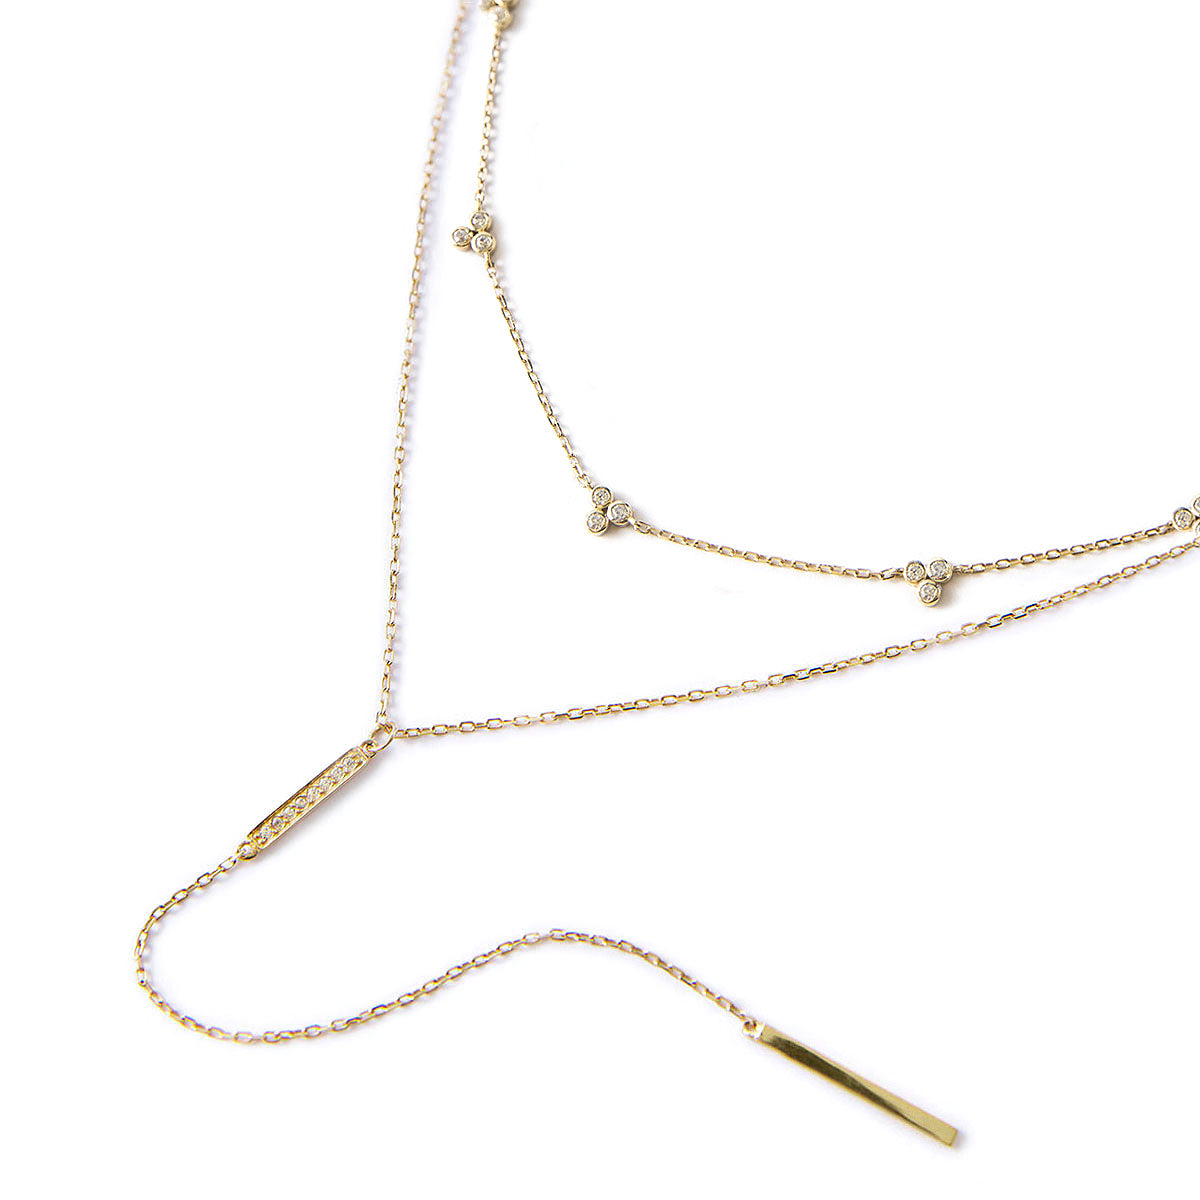 Gold Clover and Bar Lariat Layered Necklace